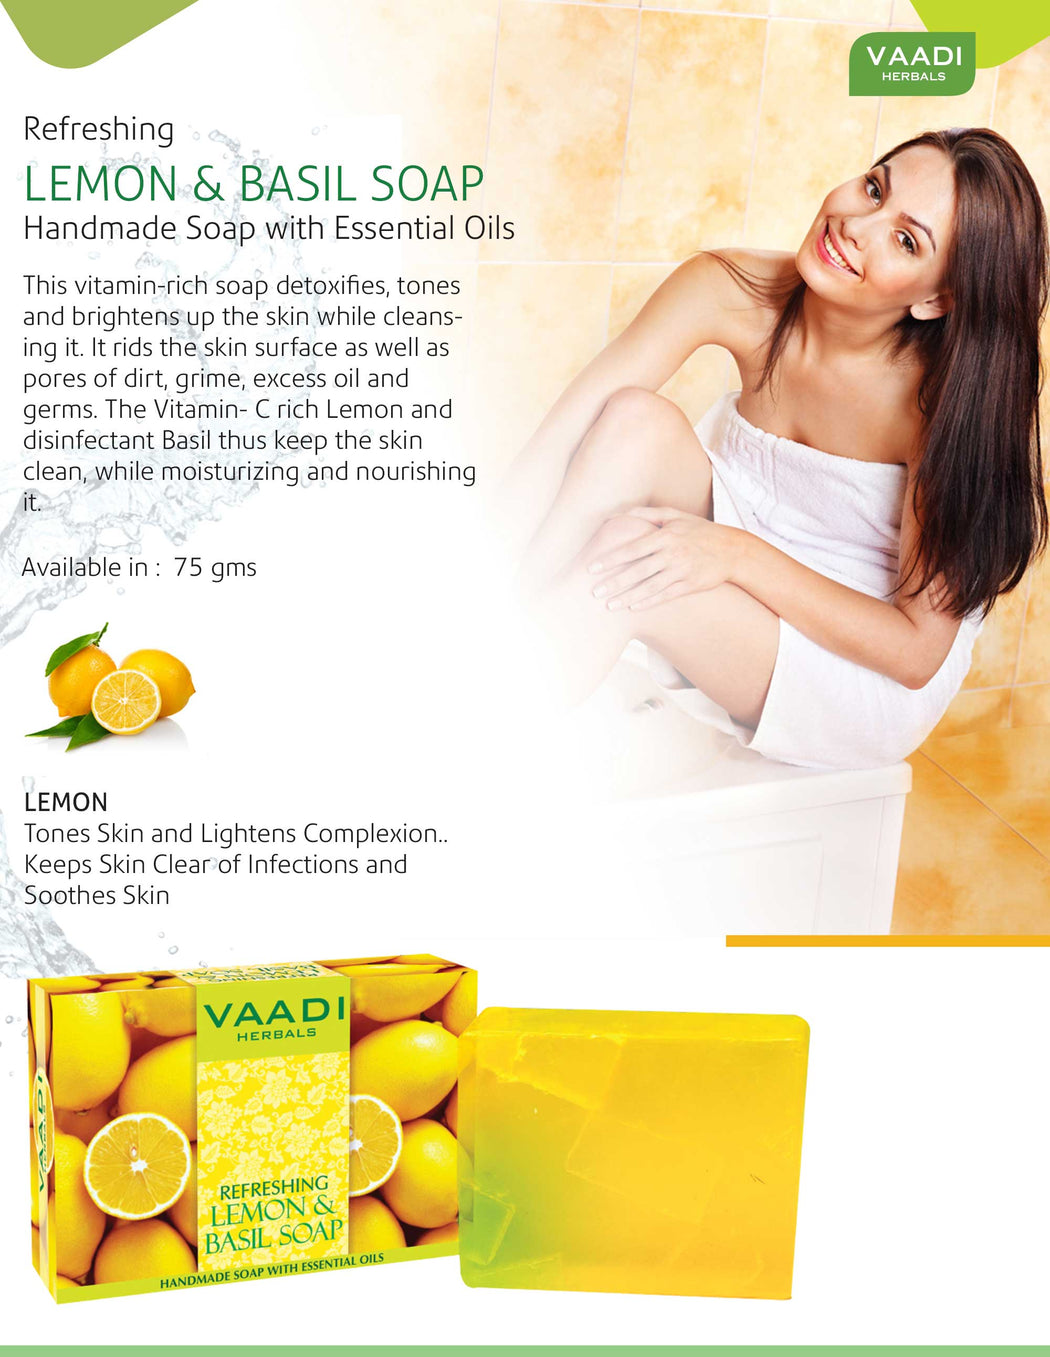 Refreshing Organic Lemon & Basil Soap - Tones & Brightens Skin - Detoxifies Skin Deep (3 x 75 gms / 2.7 oz)